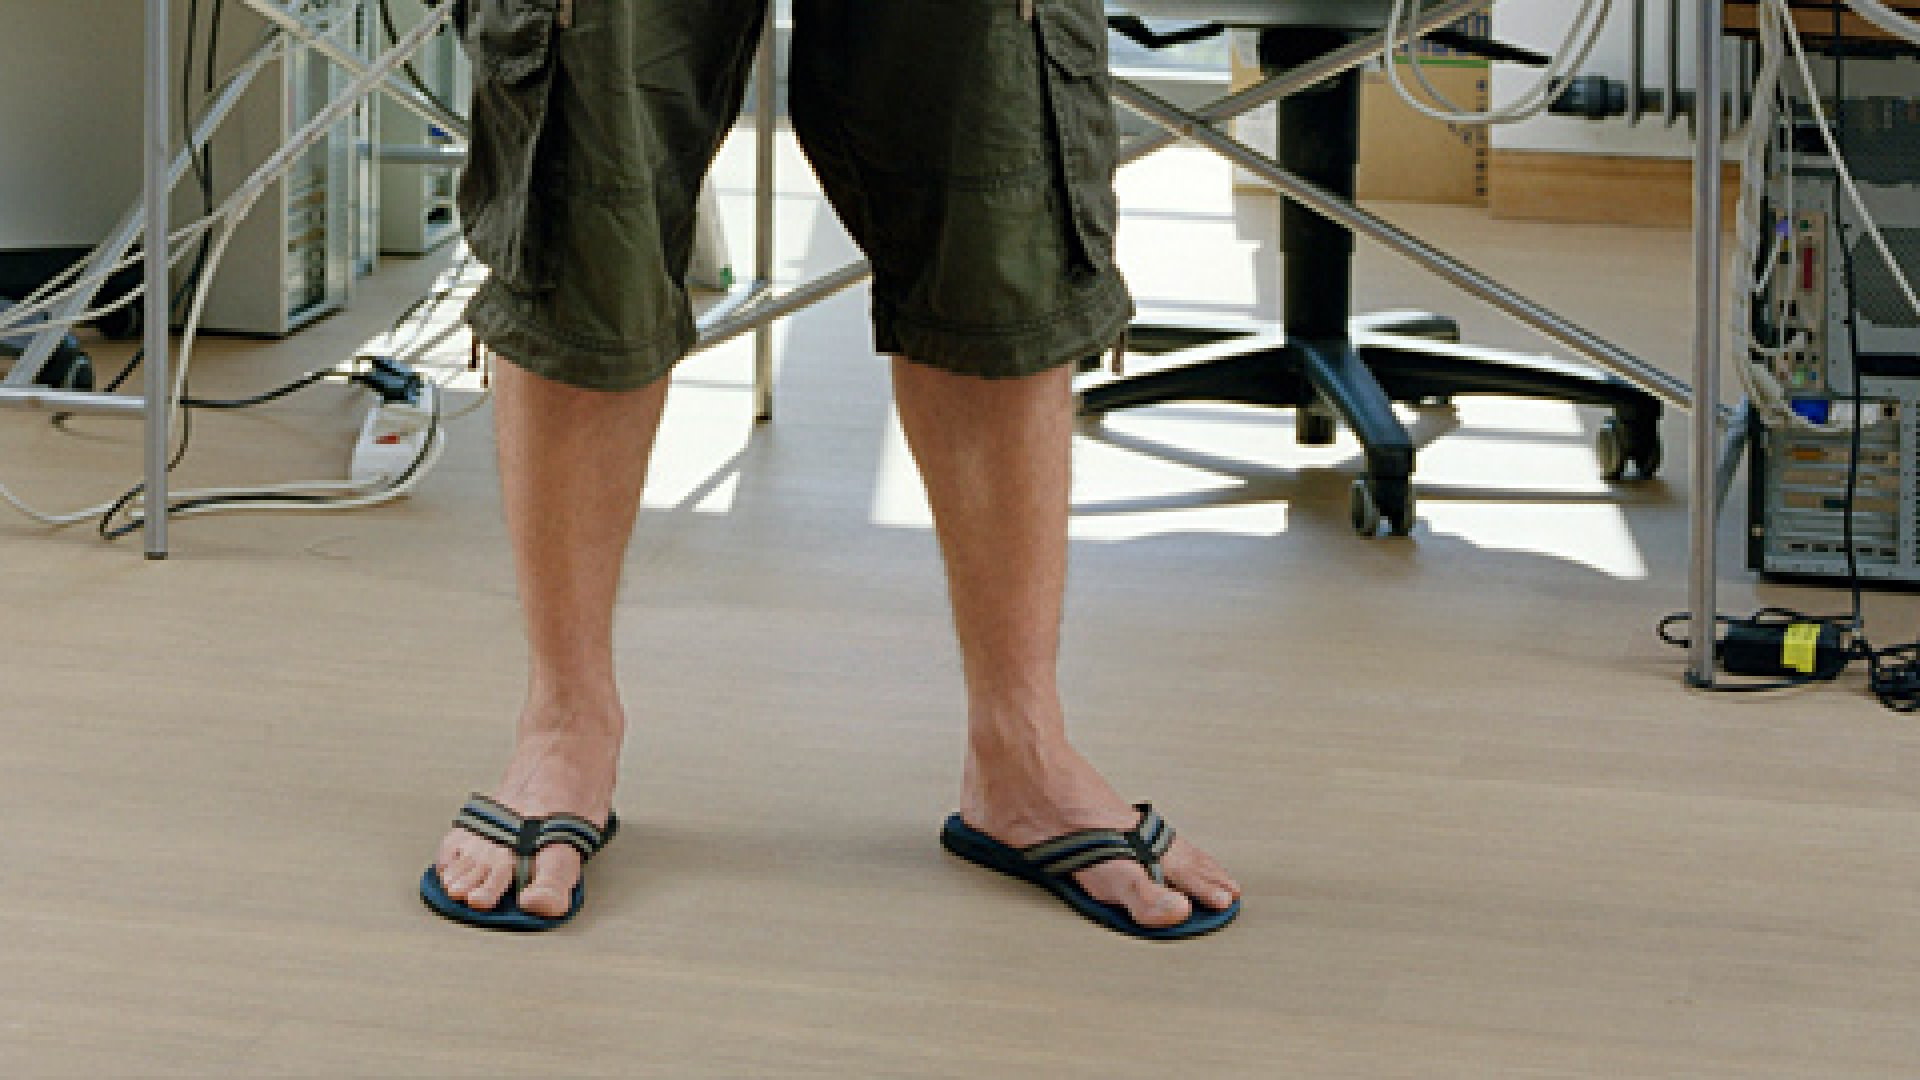 Flip flops or any other item or attitude may inspire your company culture.